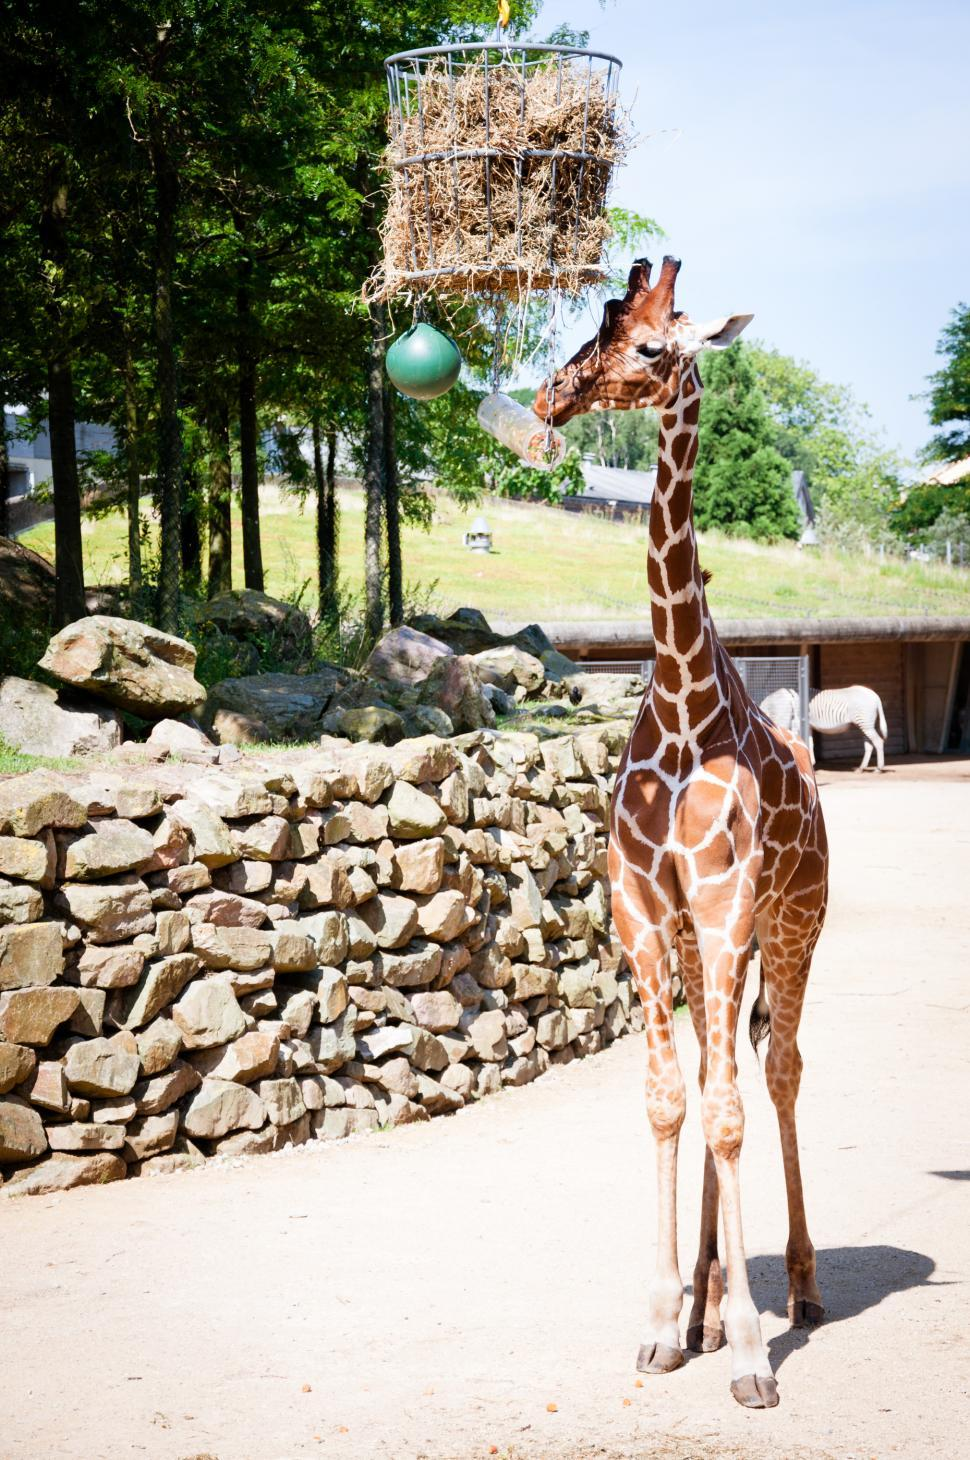 Download Free Stock Photo of Giraffe in the zoo